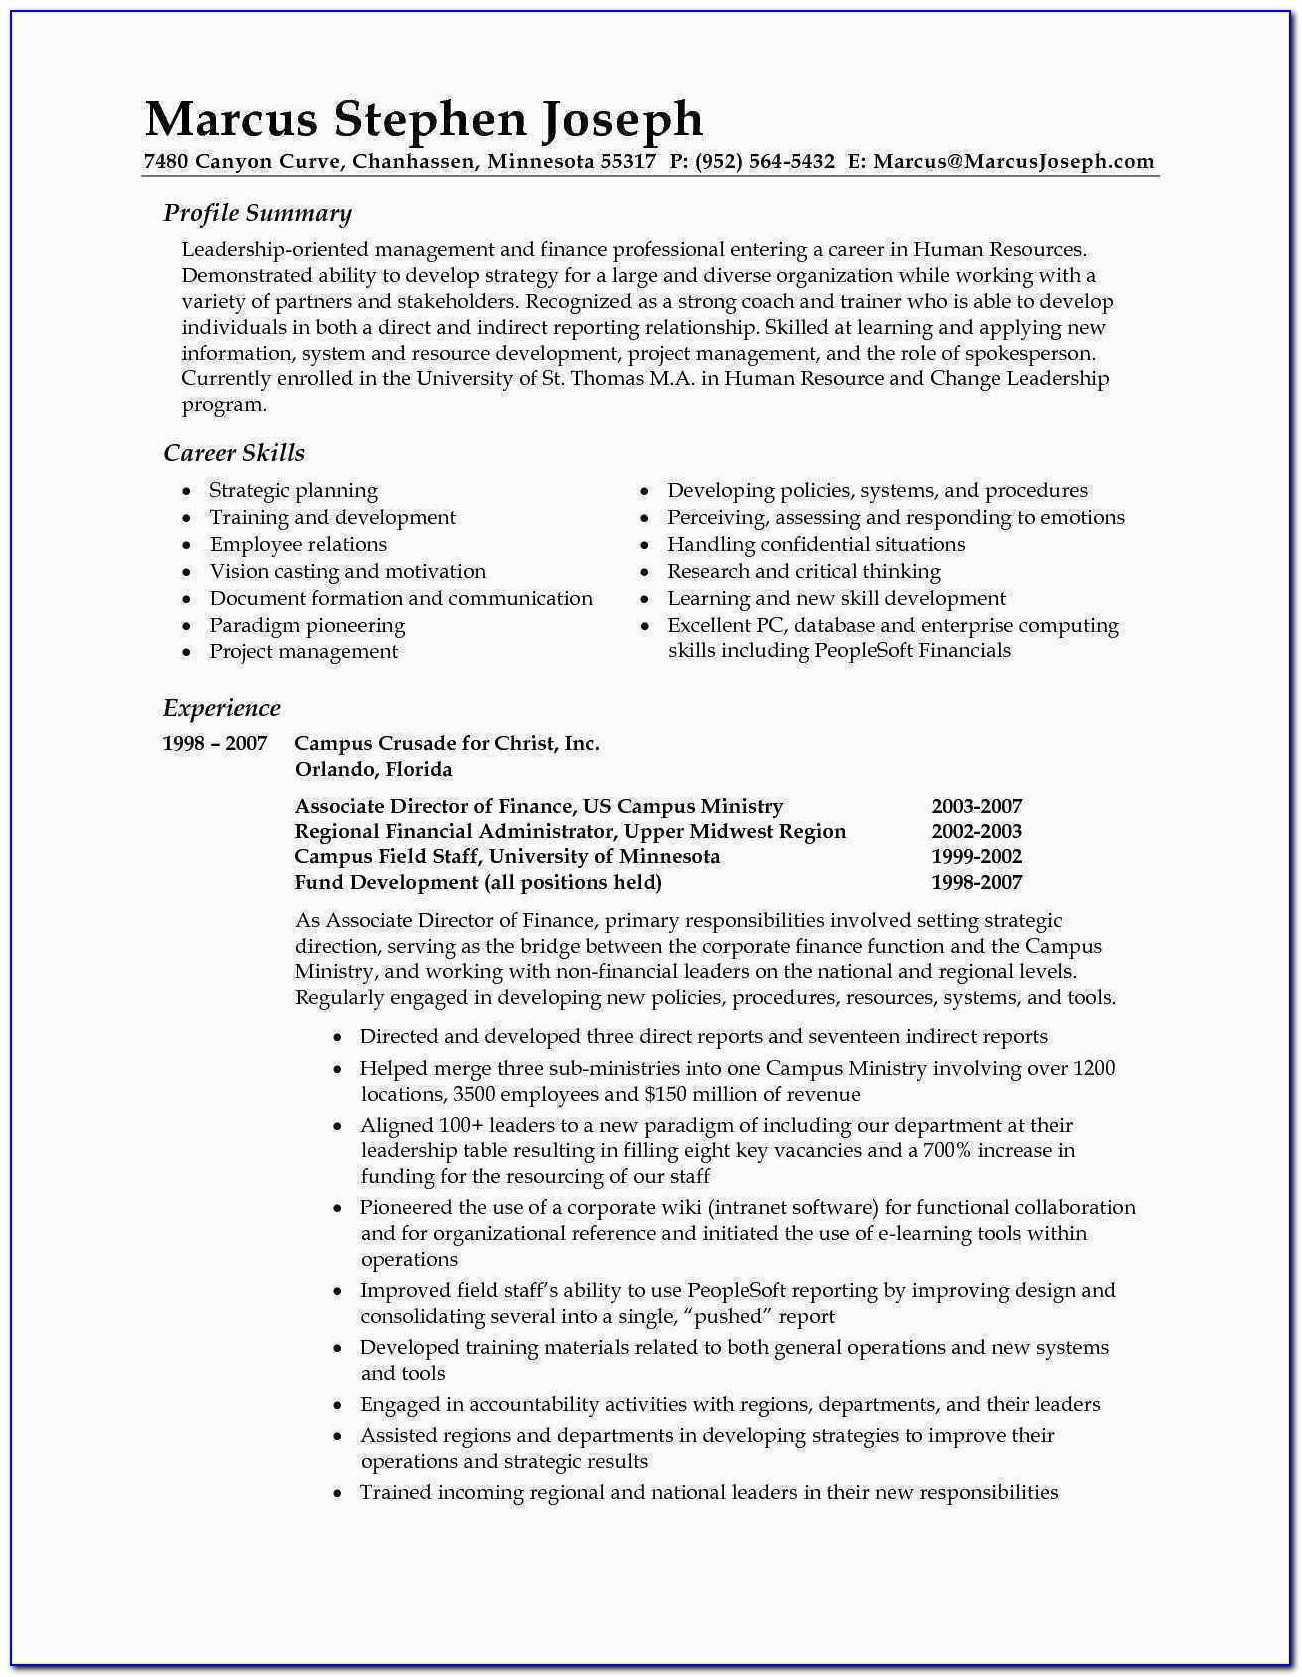 Professionally Written Resume Samples Inspirational Professional Summary Resume Examples New Writing A Great Resume